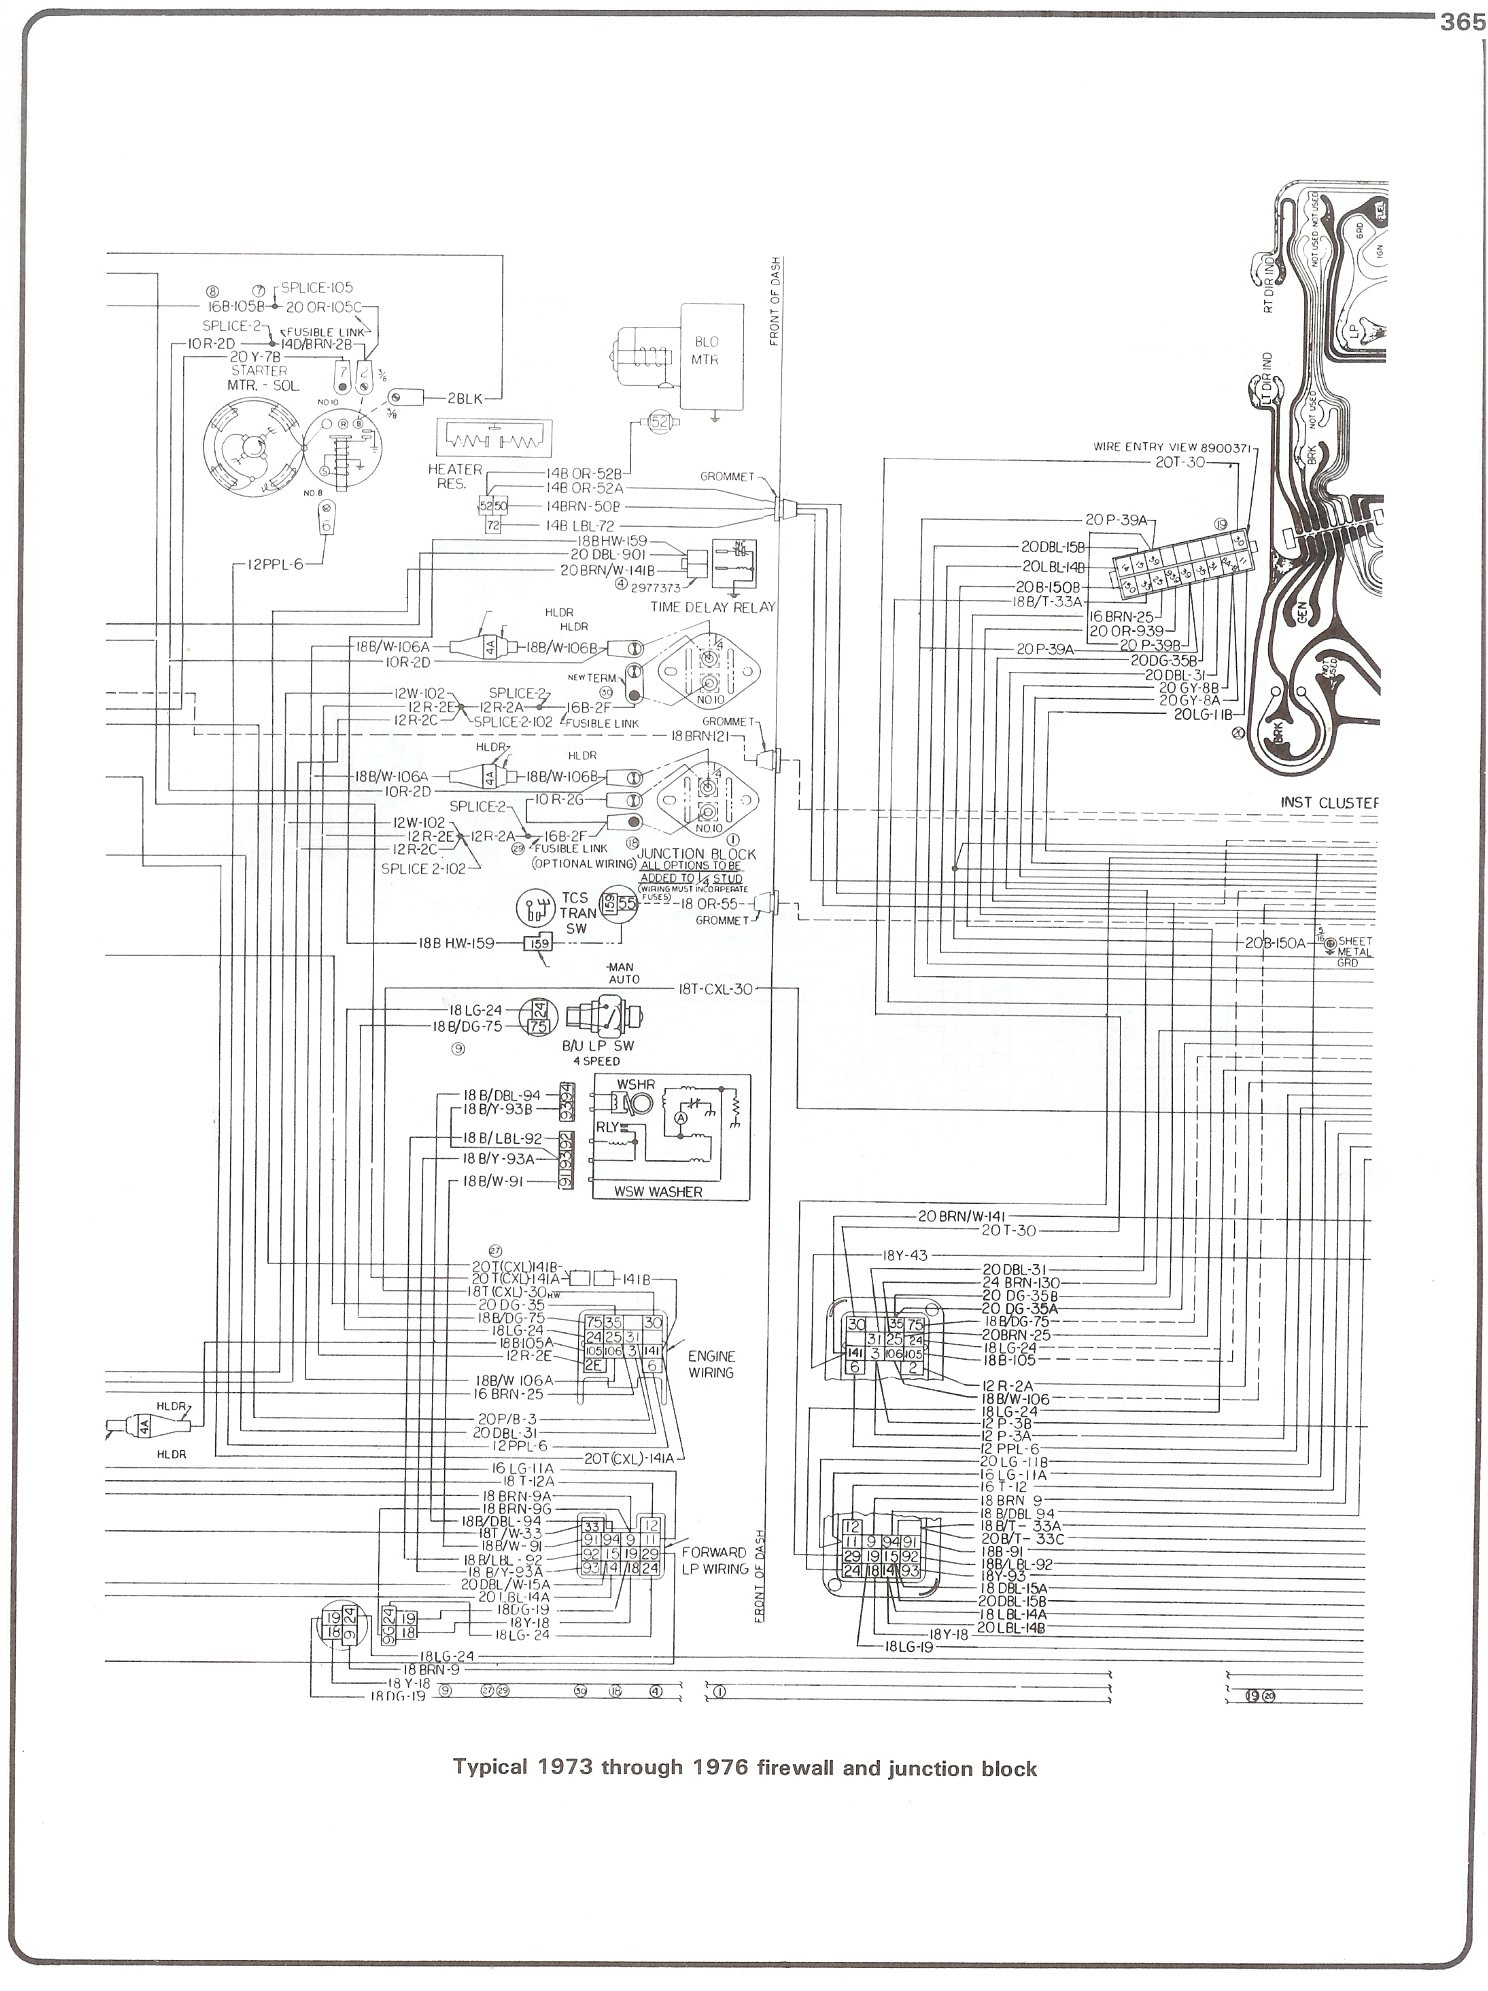 Plete 7387 Wiring Diagrams. 7376 Firewall Junction. GM. 2004 GMC Wiring Diagrams Free Horn At Scoala.co